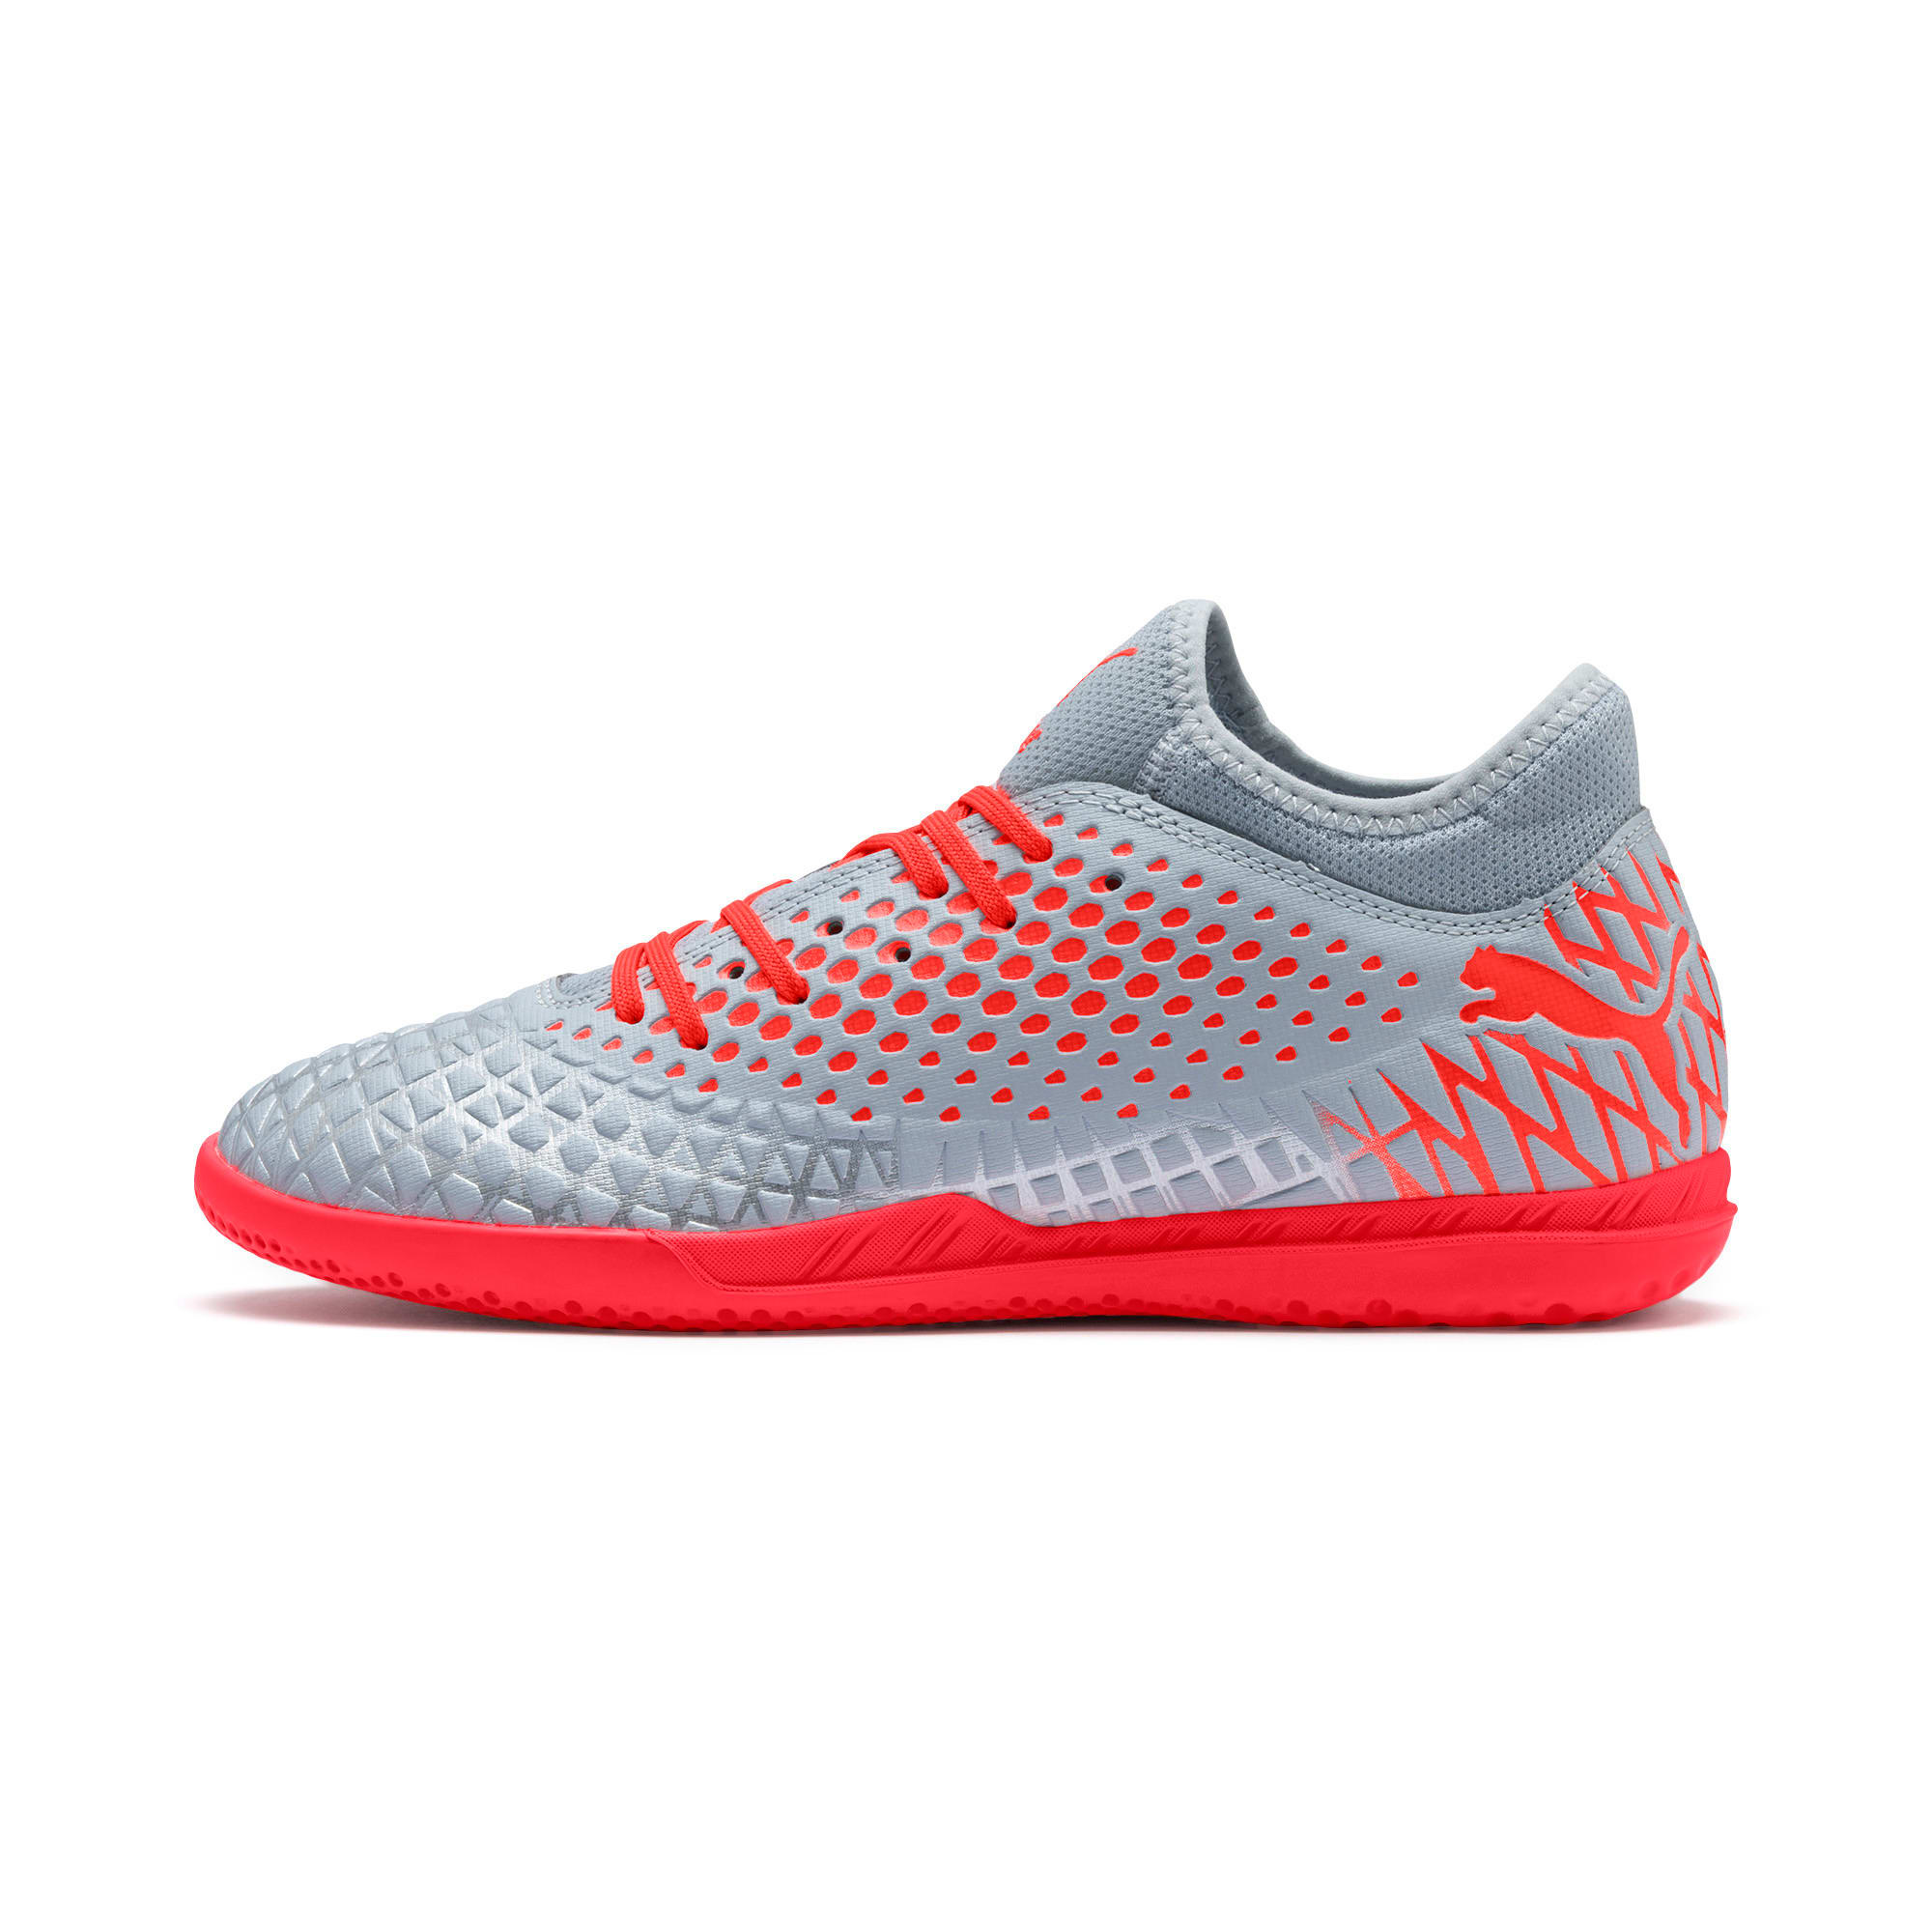 Thumbnail 1 van FUTURE 4.4 IT voetbalschoenen voor heren, Glacial Blue-Nrgy Red, medium